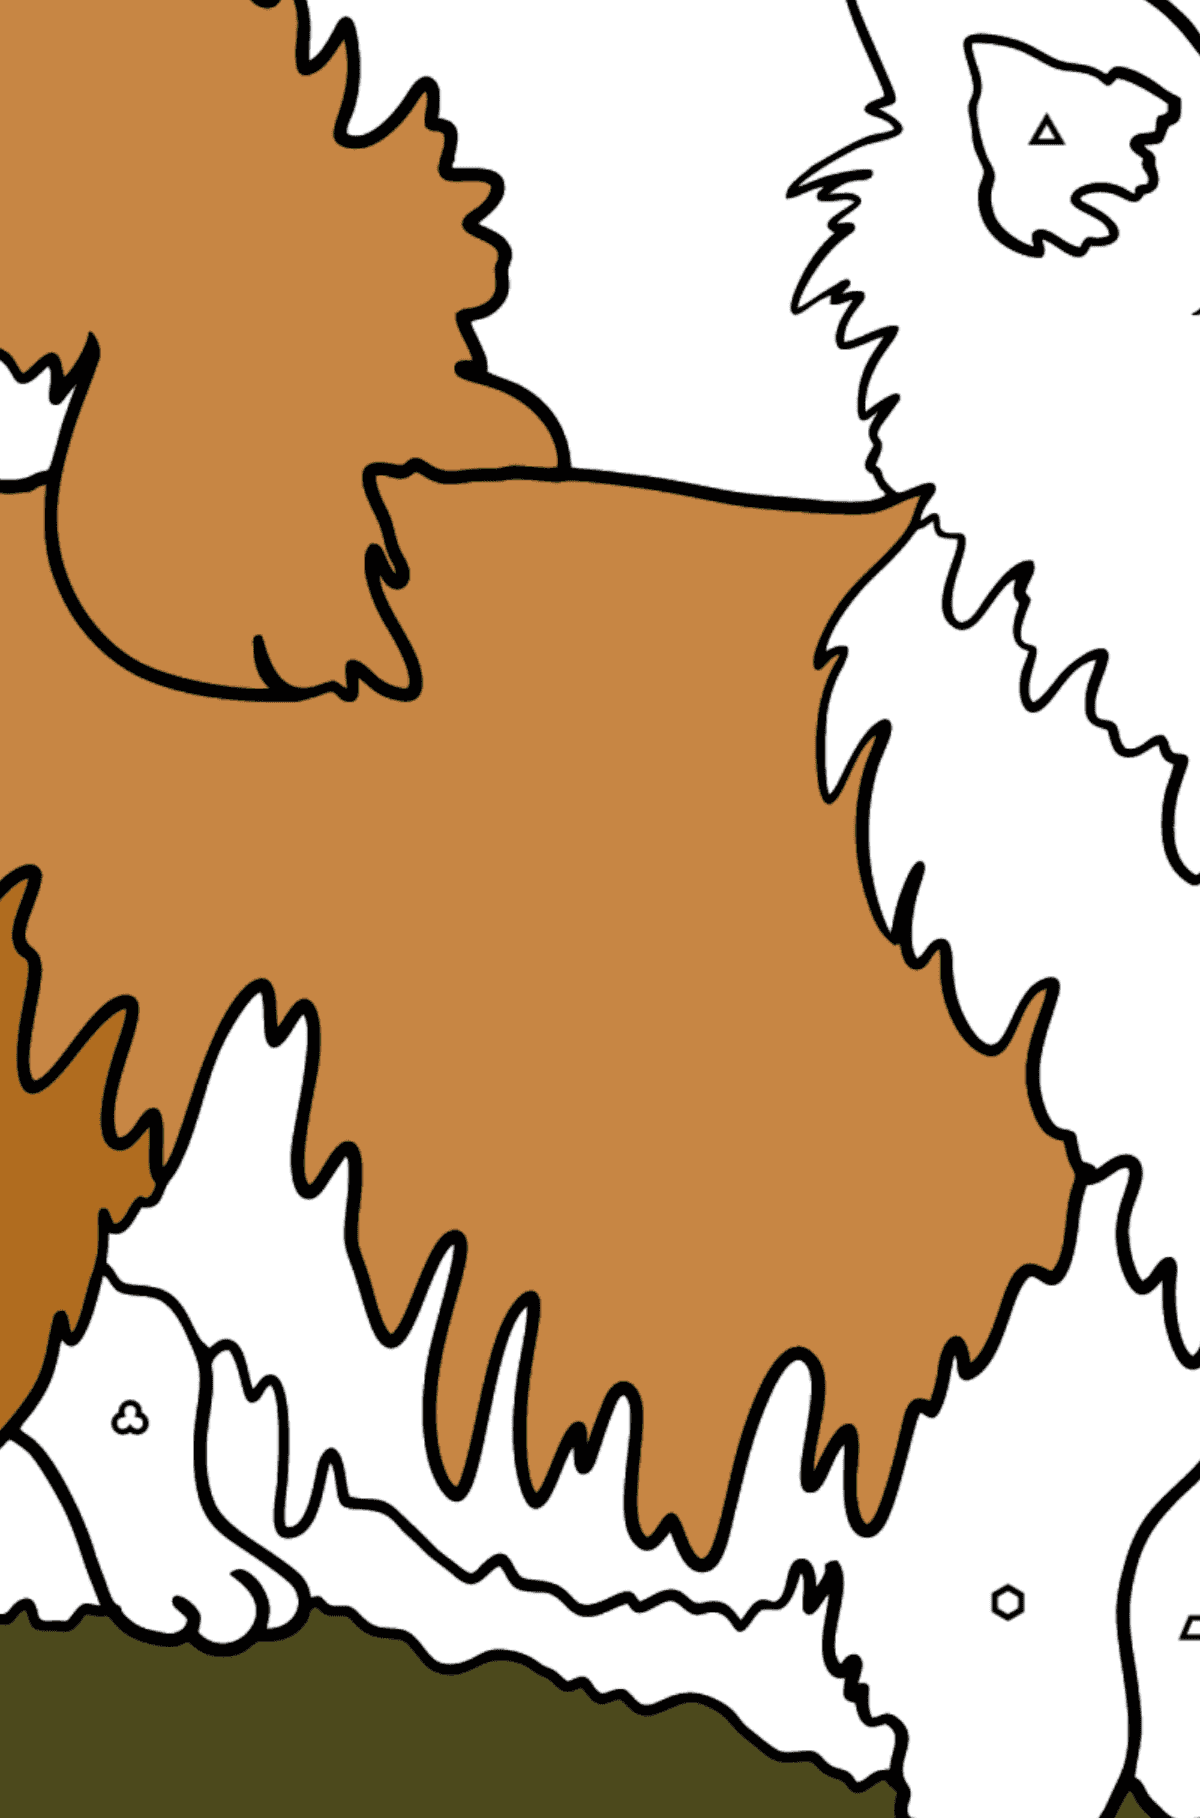 Chihuahua coloring page - Coloring by Geometric Shapes for Kids